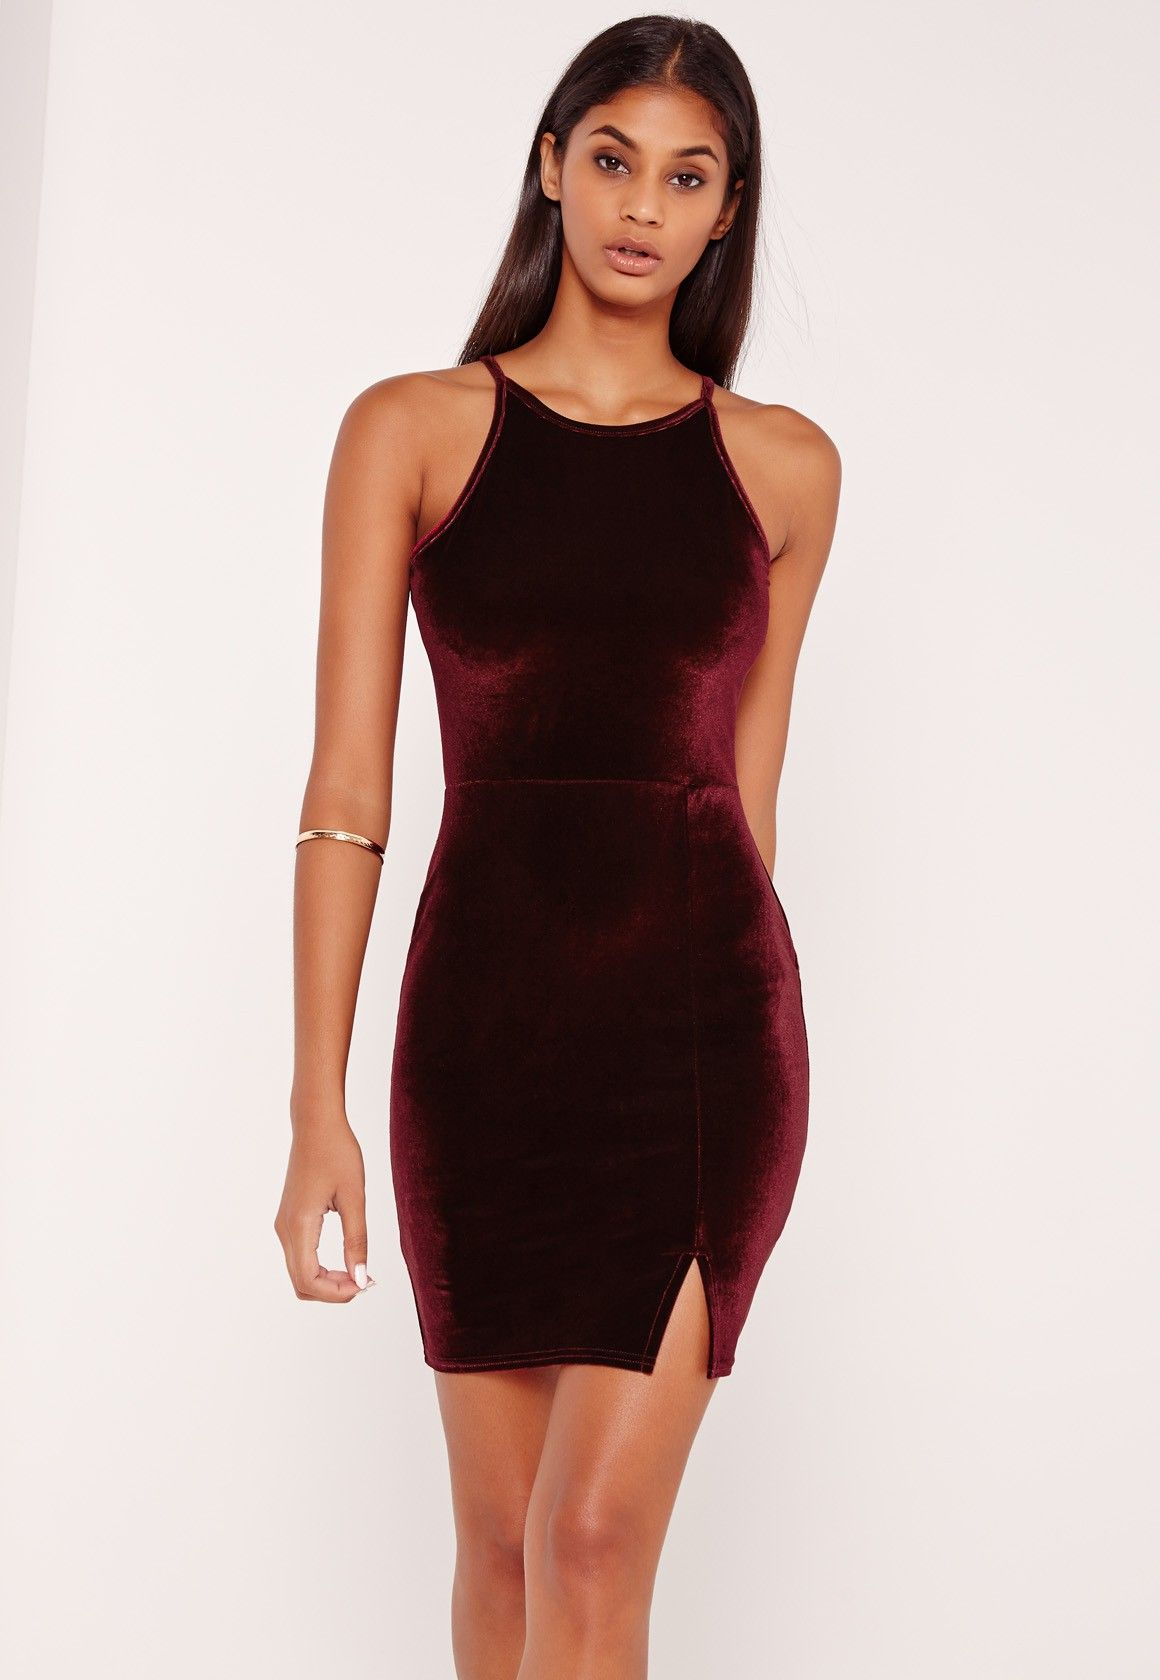 51091040c3b9 Go for this 90's neck bodycon dress this weekend for a fierce look! In a  velvet finish and split detailing to the front - all eyes will be on you!